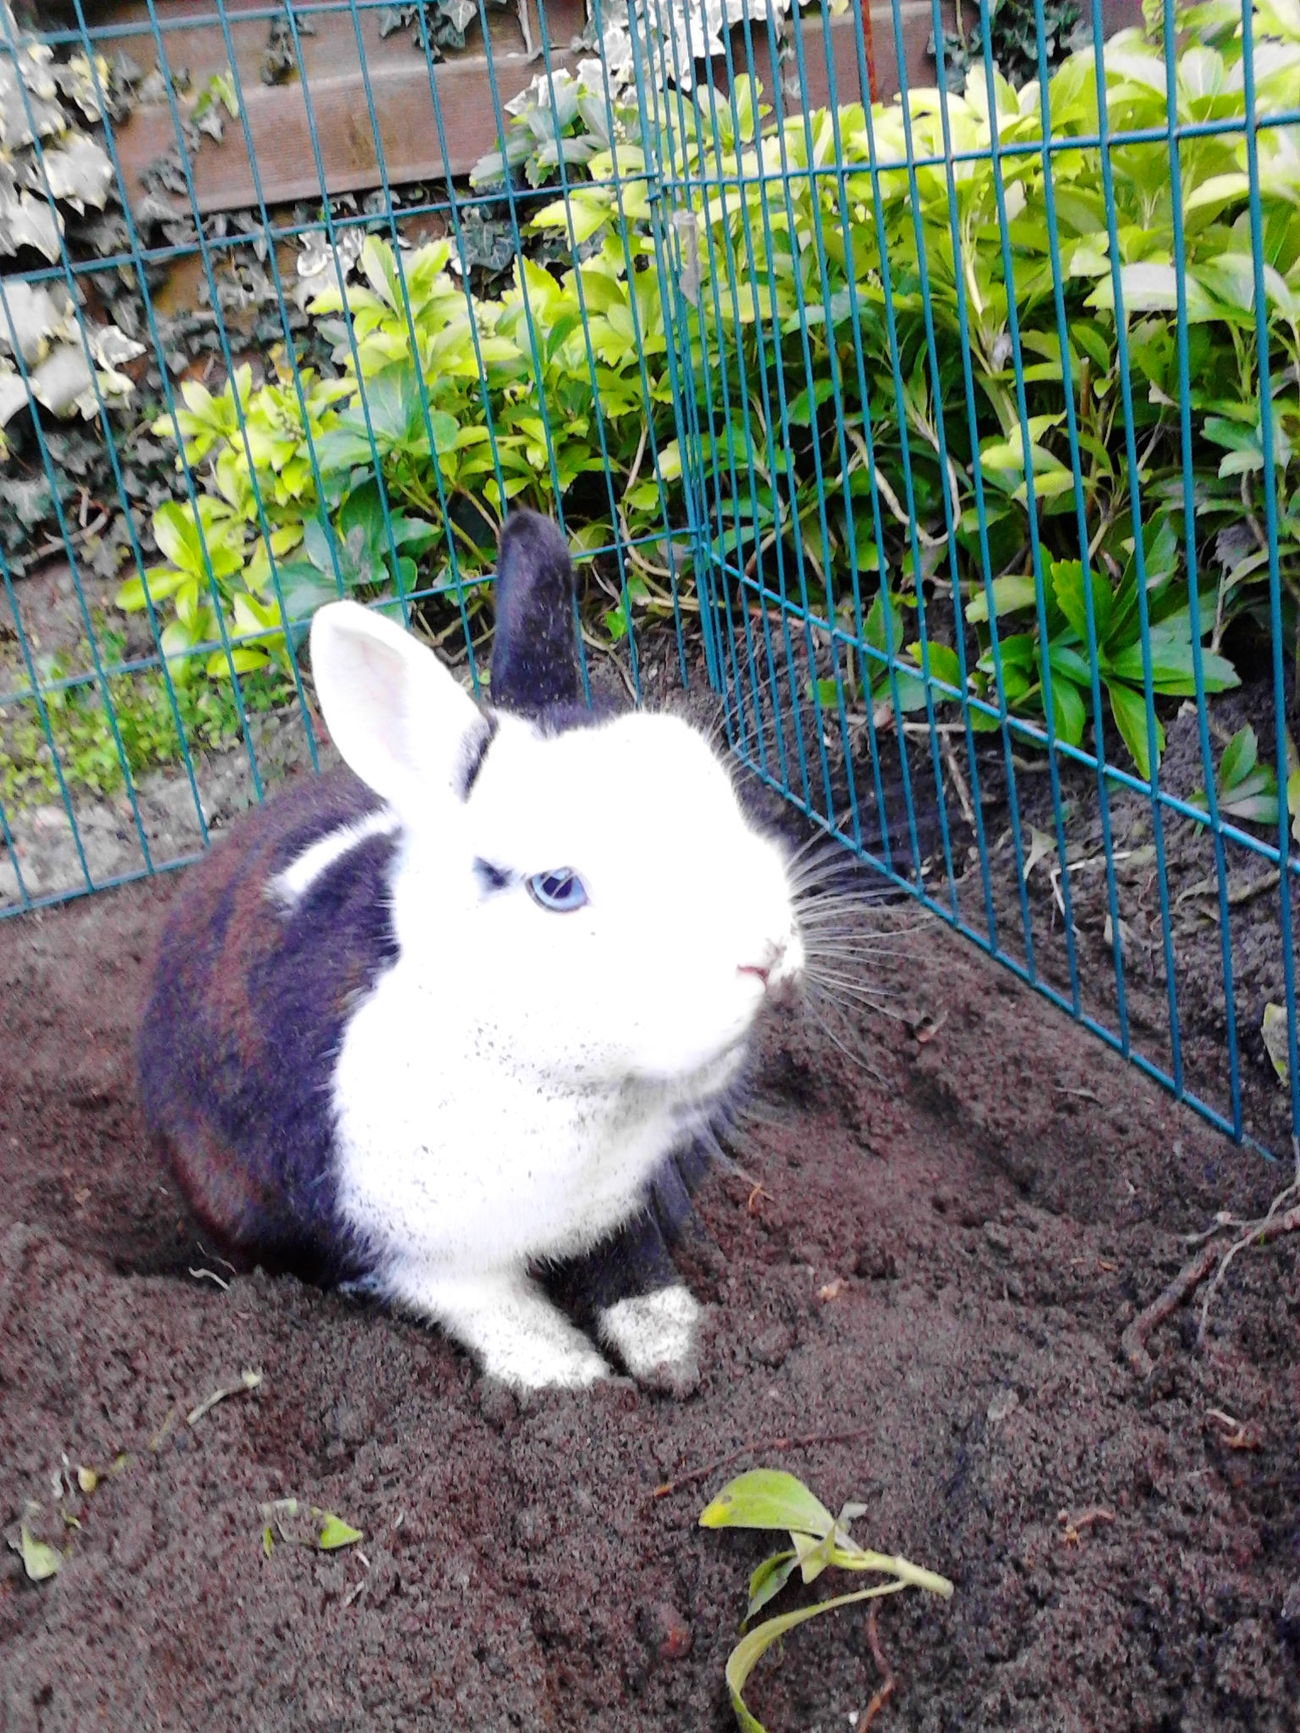 EyeEm Animal Lover, My Rabbit, Mr Rabbit, Rabbit